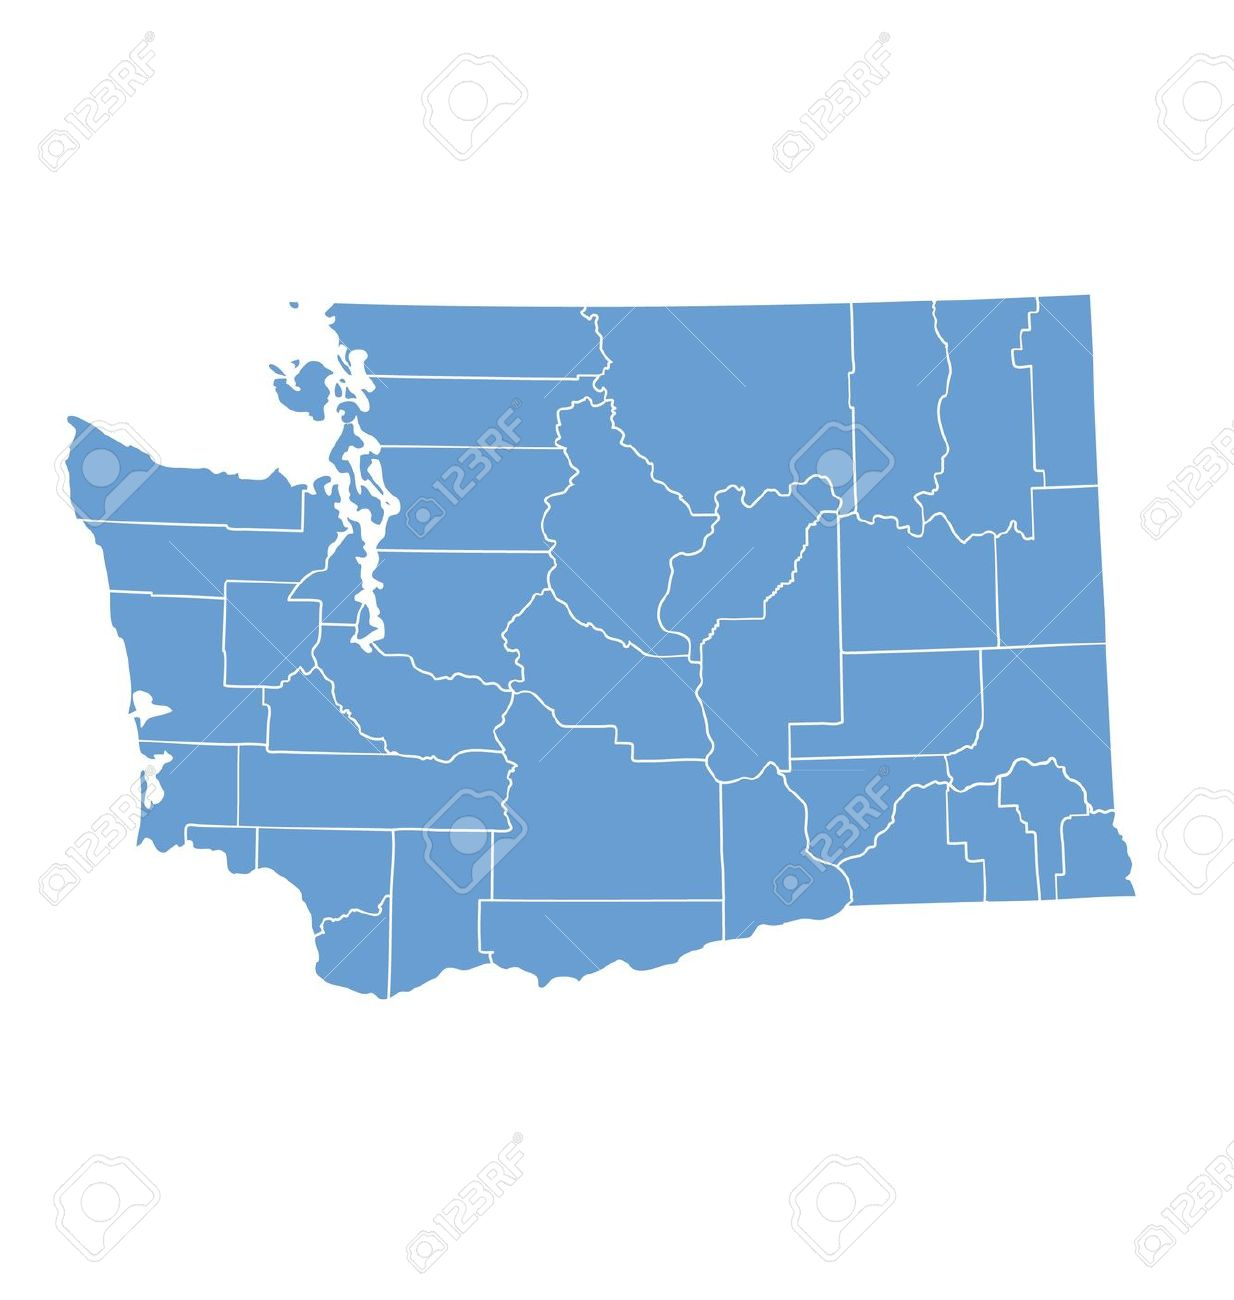 Washington State clipart #13, Download drawings